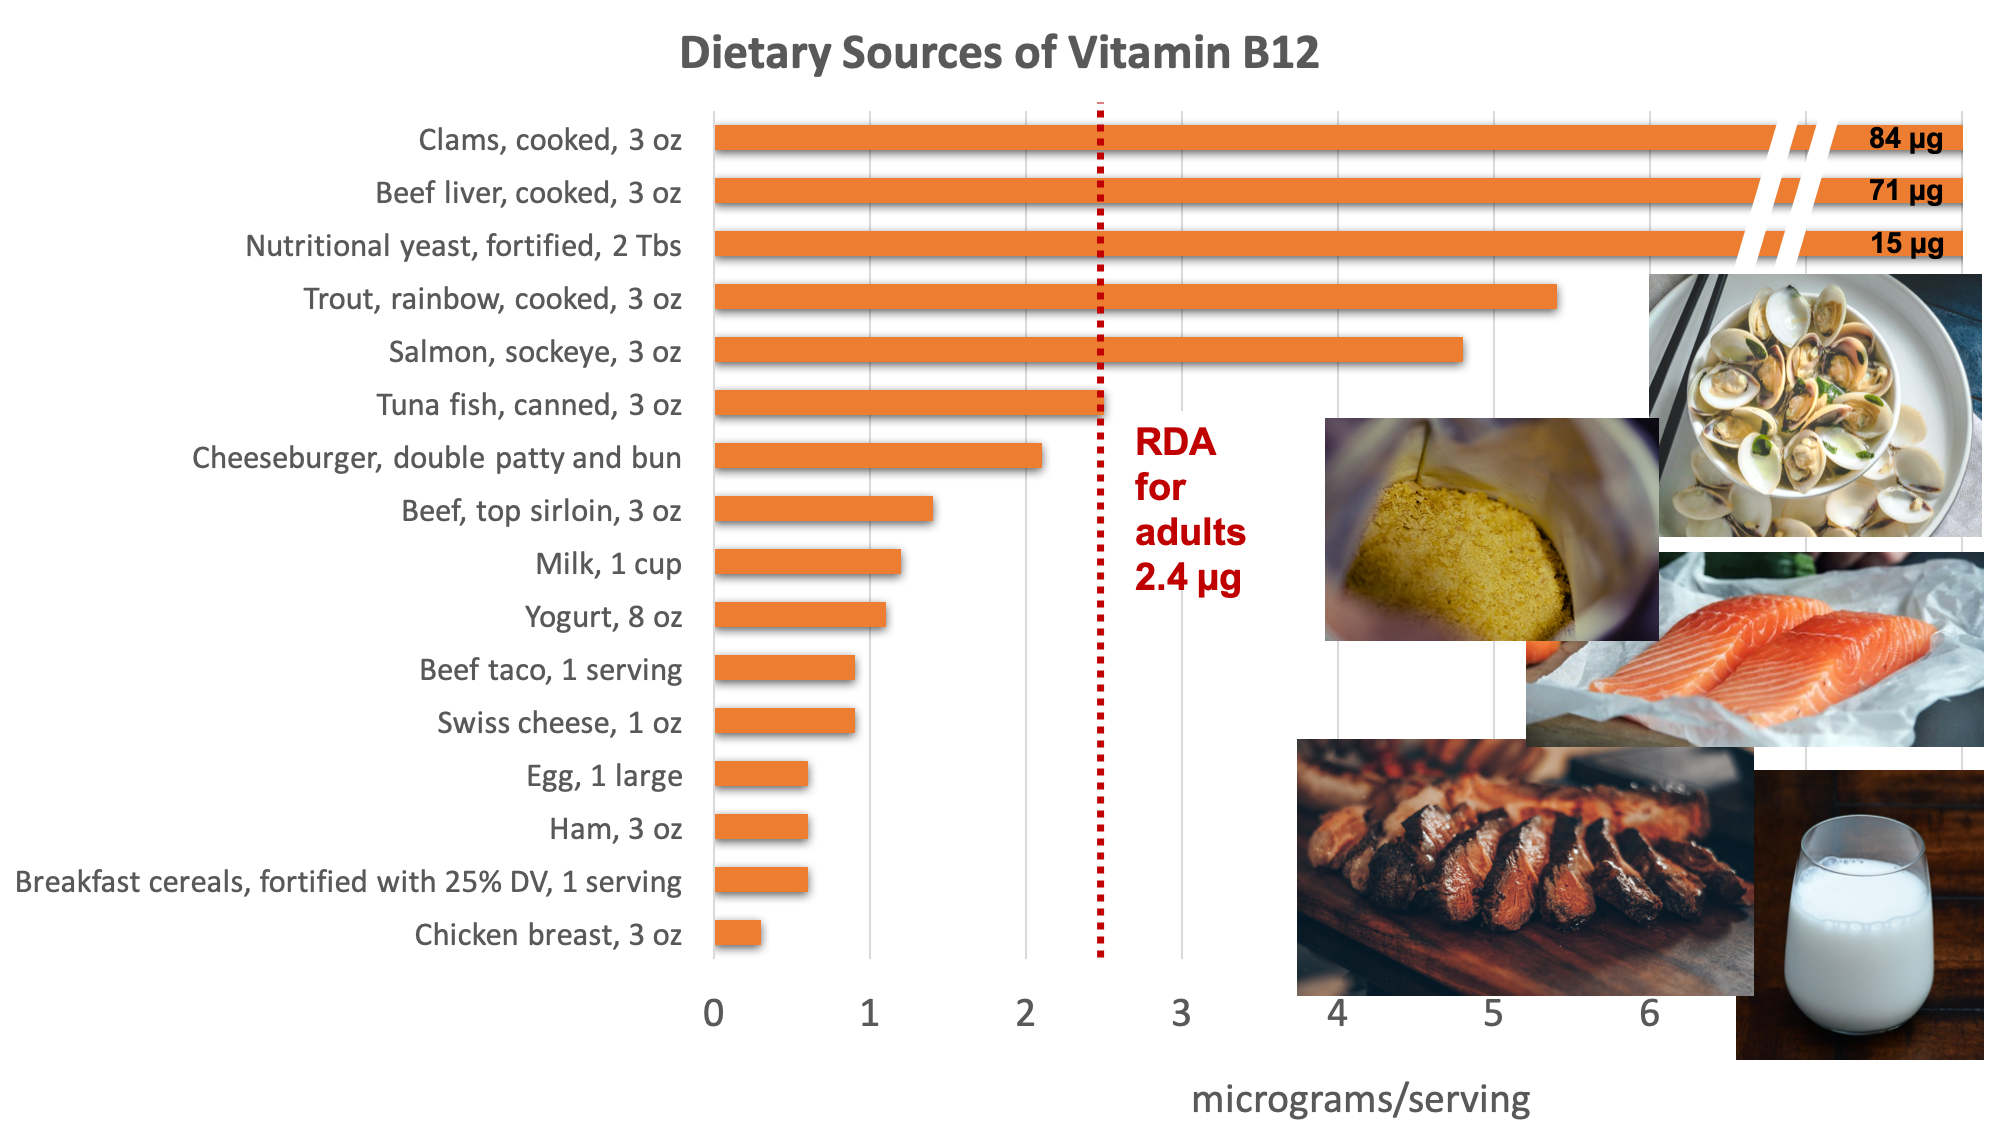 Bar graph showing dietary sources of vitamin B12 compared with the RDA adults of 2.4 micrograms. Biggest sources include clams, beef liver, nutritional yeast, trout, salmon, tuna, beef, milk, yogurt, Swiss cheese, eggs, ham, fortified breakfast cereal, and chicken.